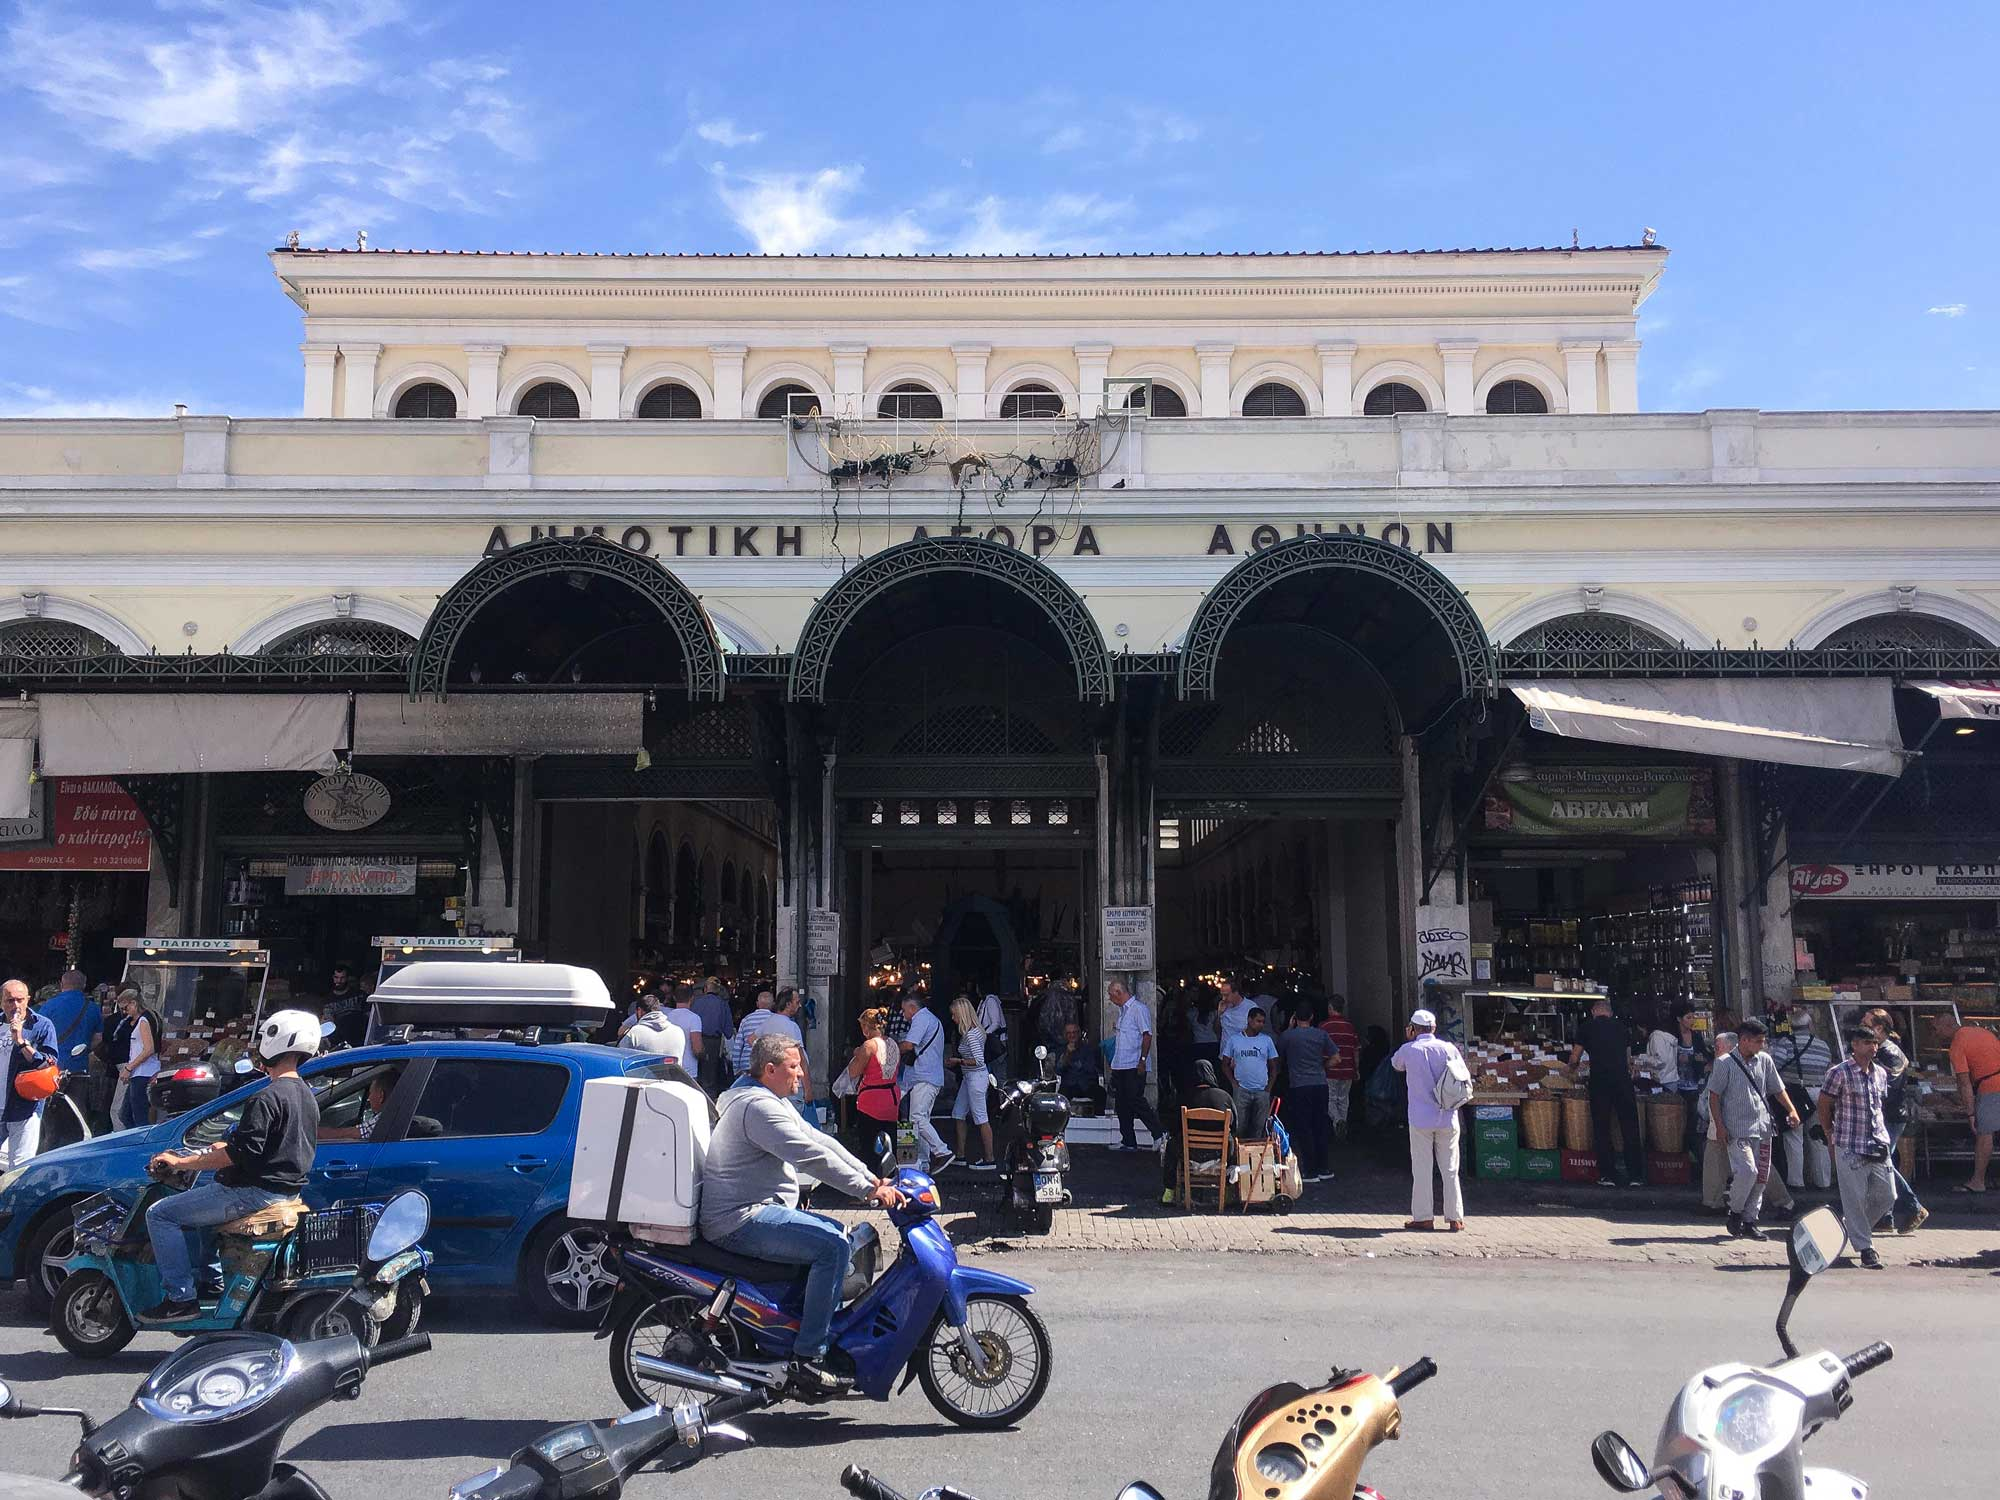 If You Want to Understand Greek Food, You Have to Visit Athens' Central Market